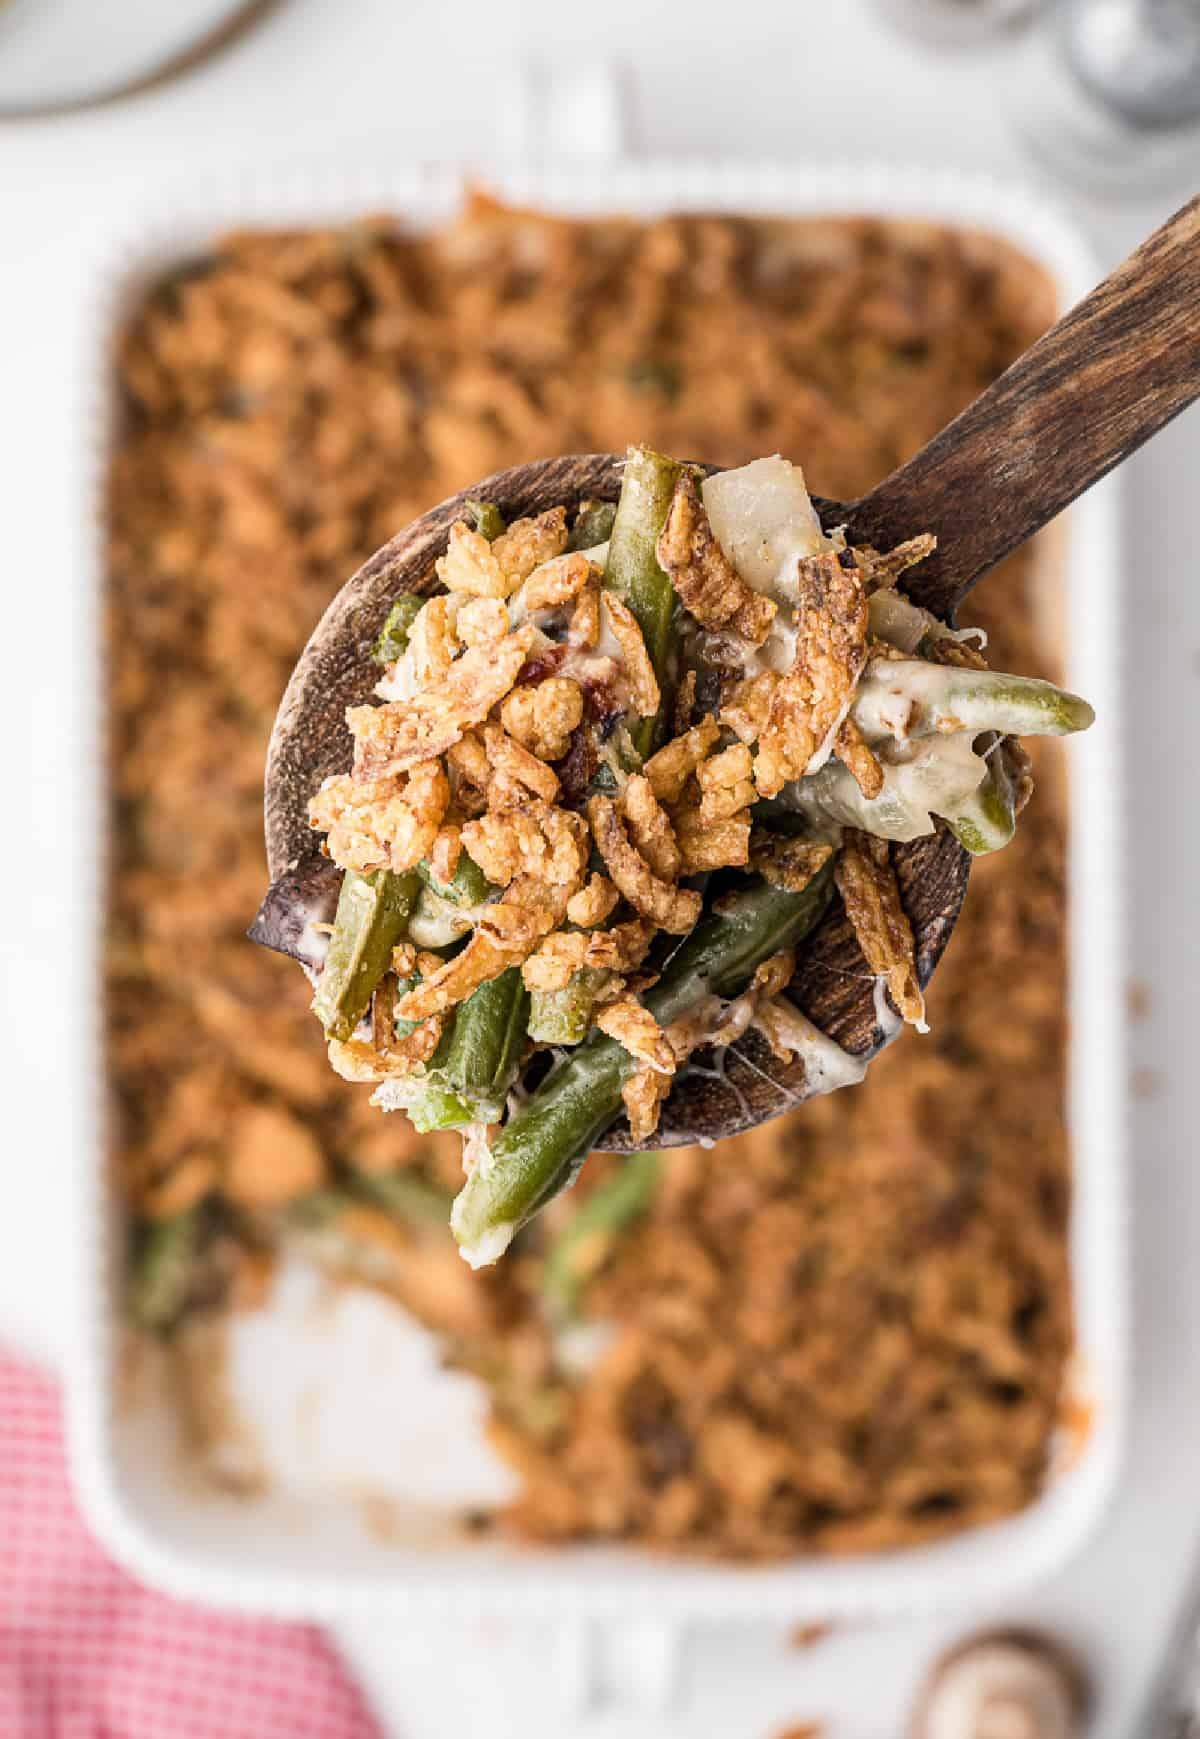 A wooden spoon scooping up a serving of green bean casserole.